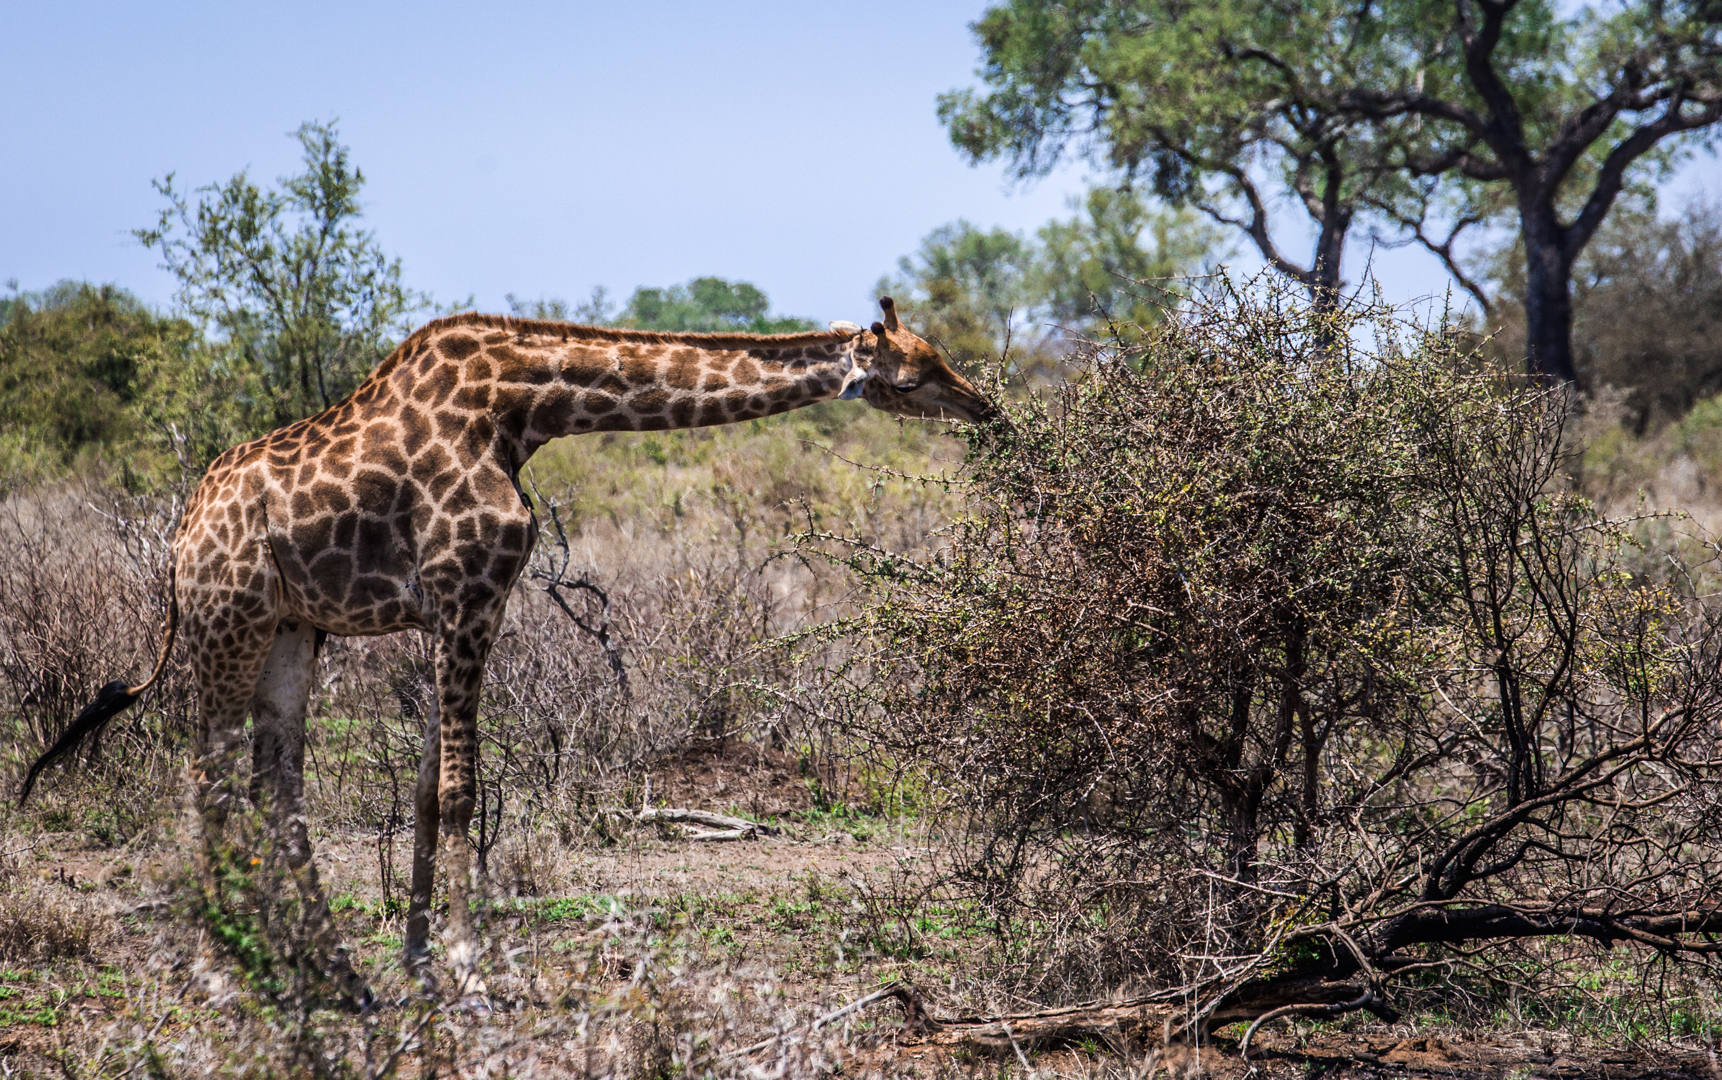 A giraffe having his snack in Kruger National Park, South Africa.